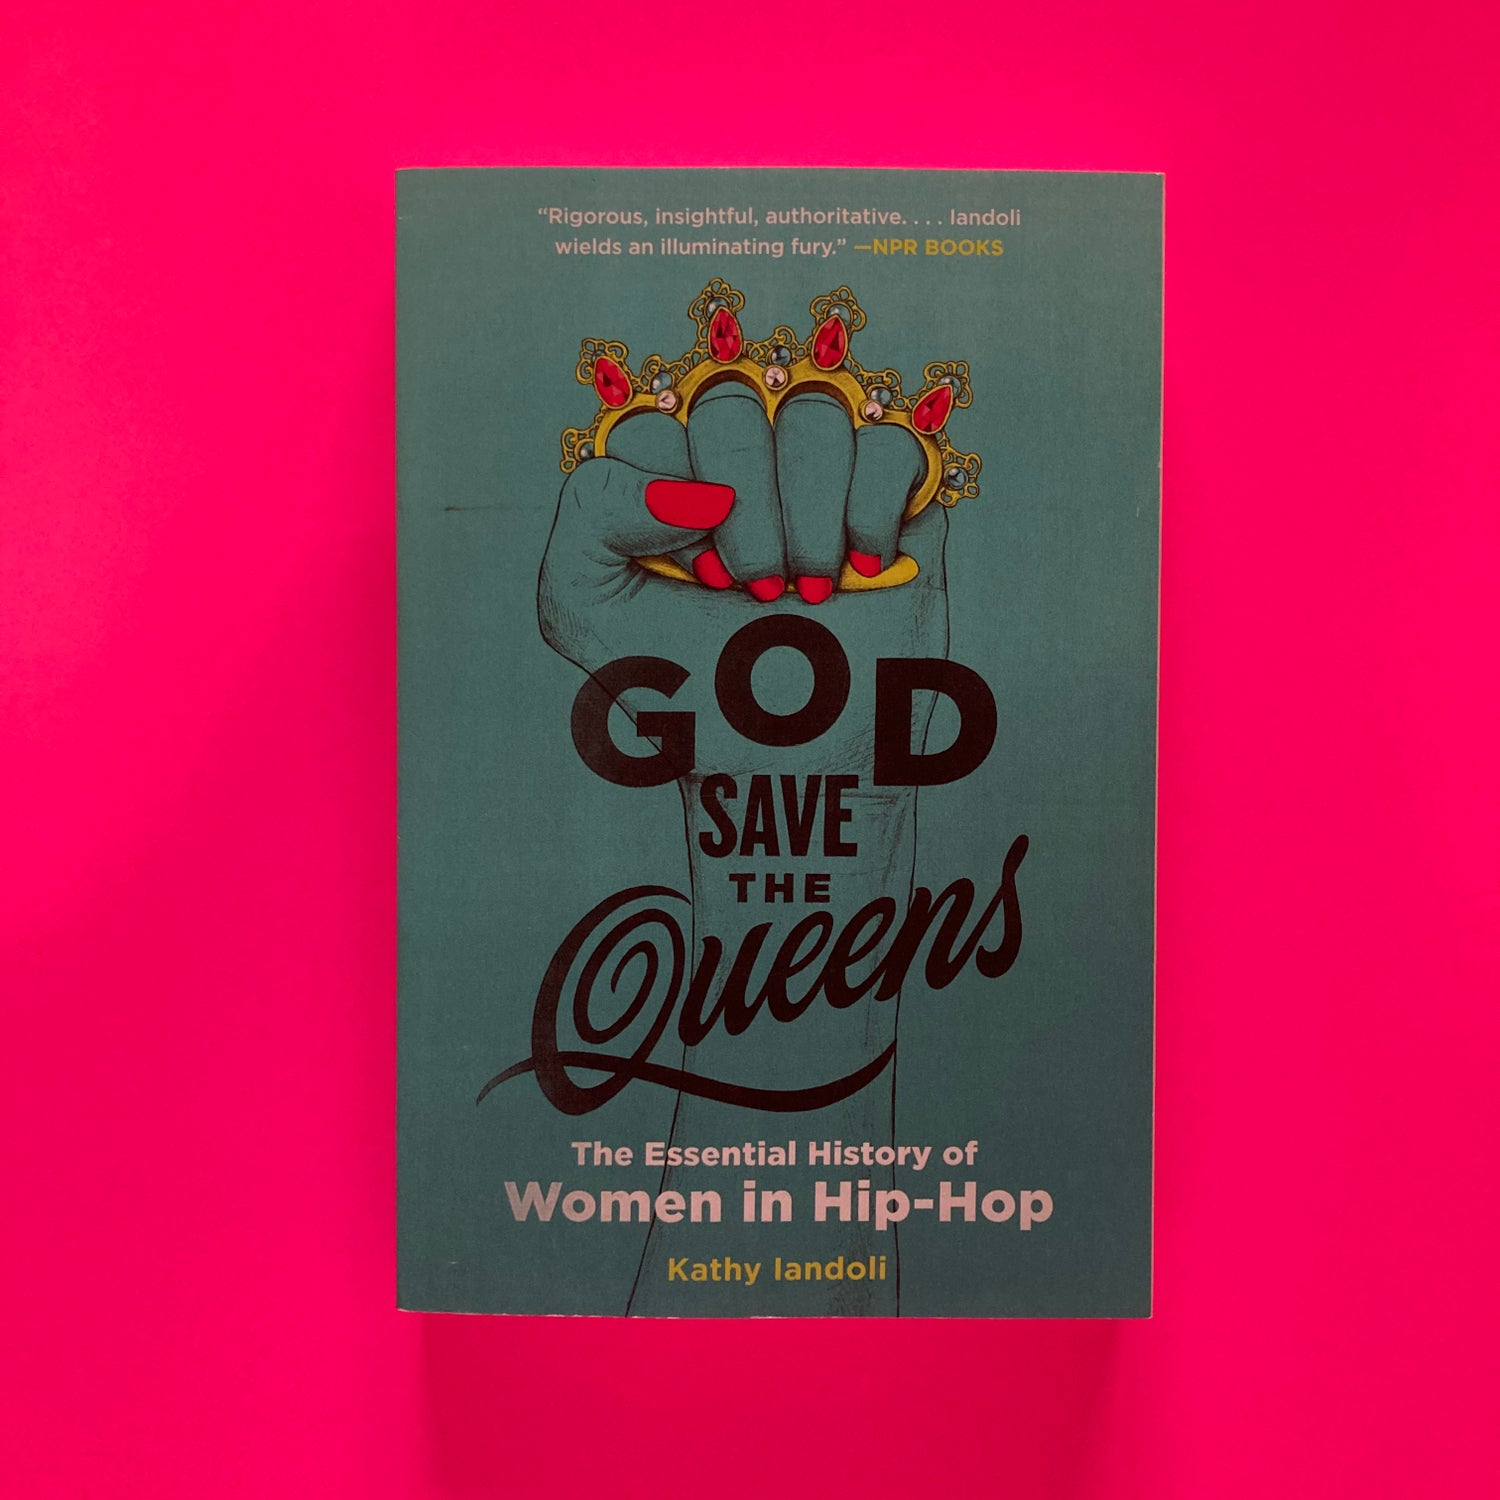 Image of God Save The Queens (Paperback) by Kathy Iandoli